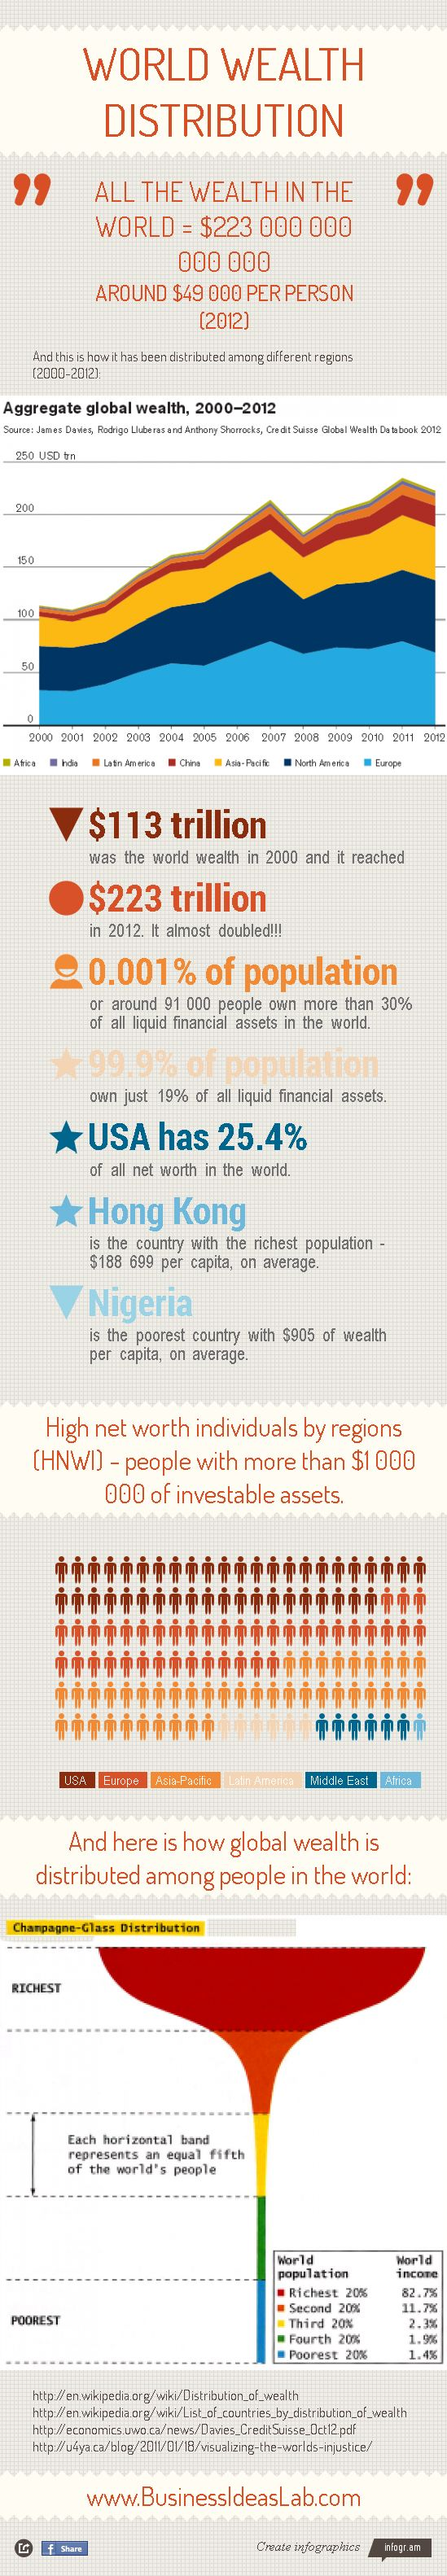 World wealth distribution statistics.